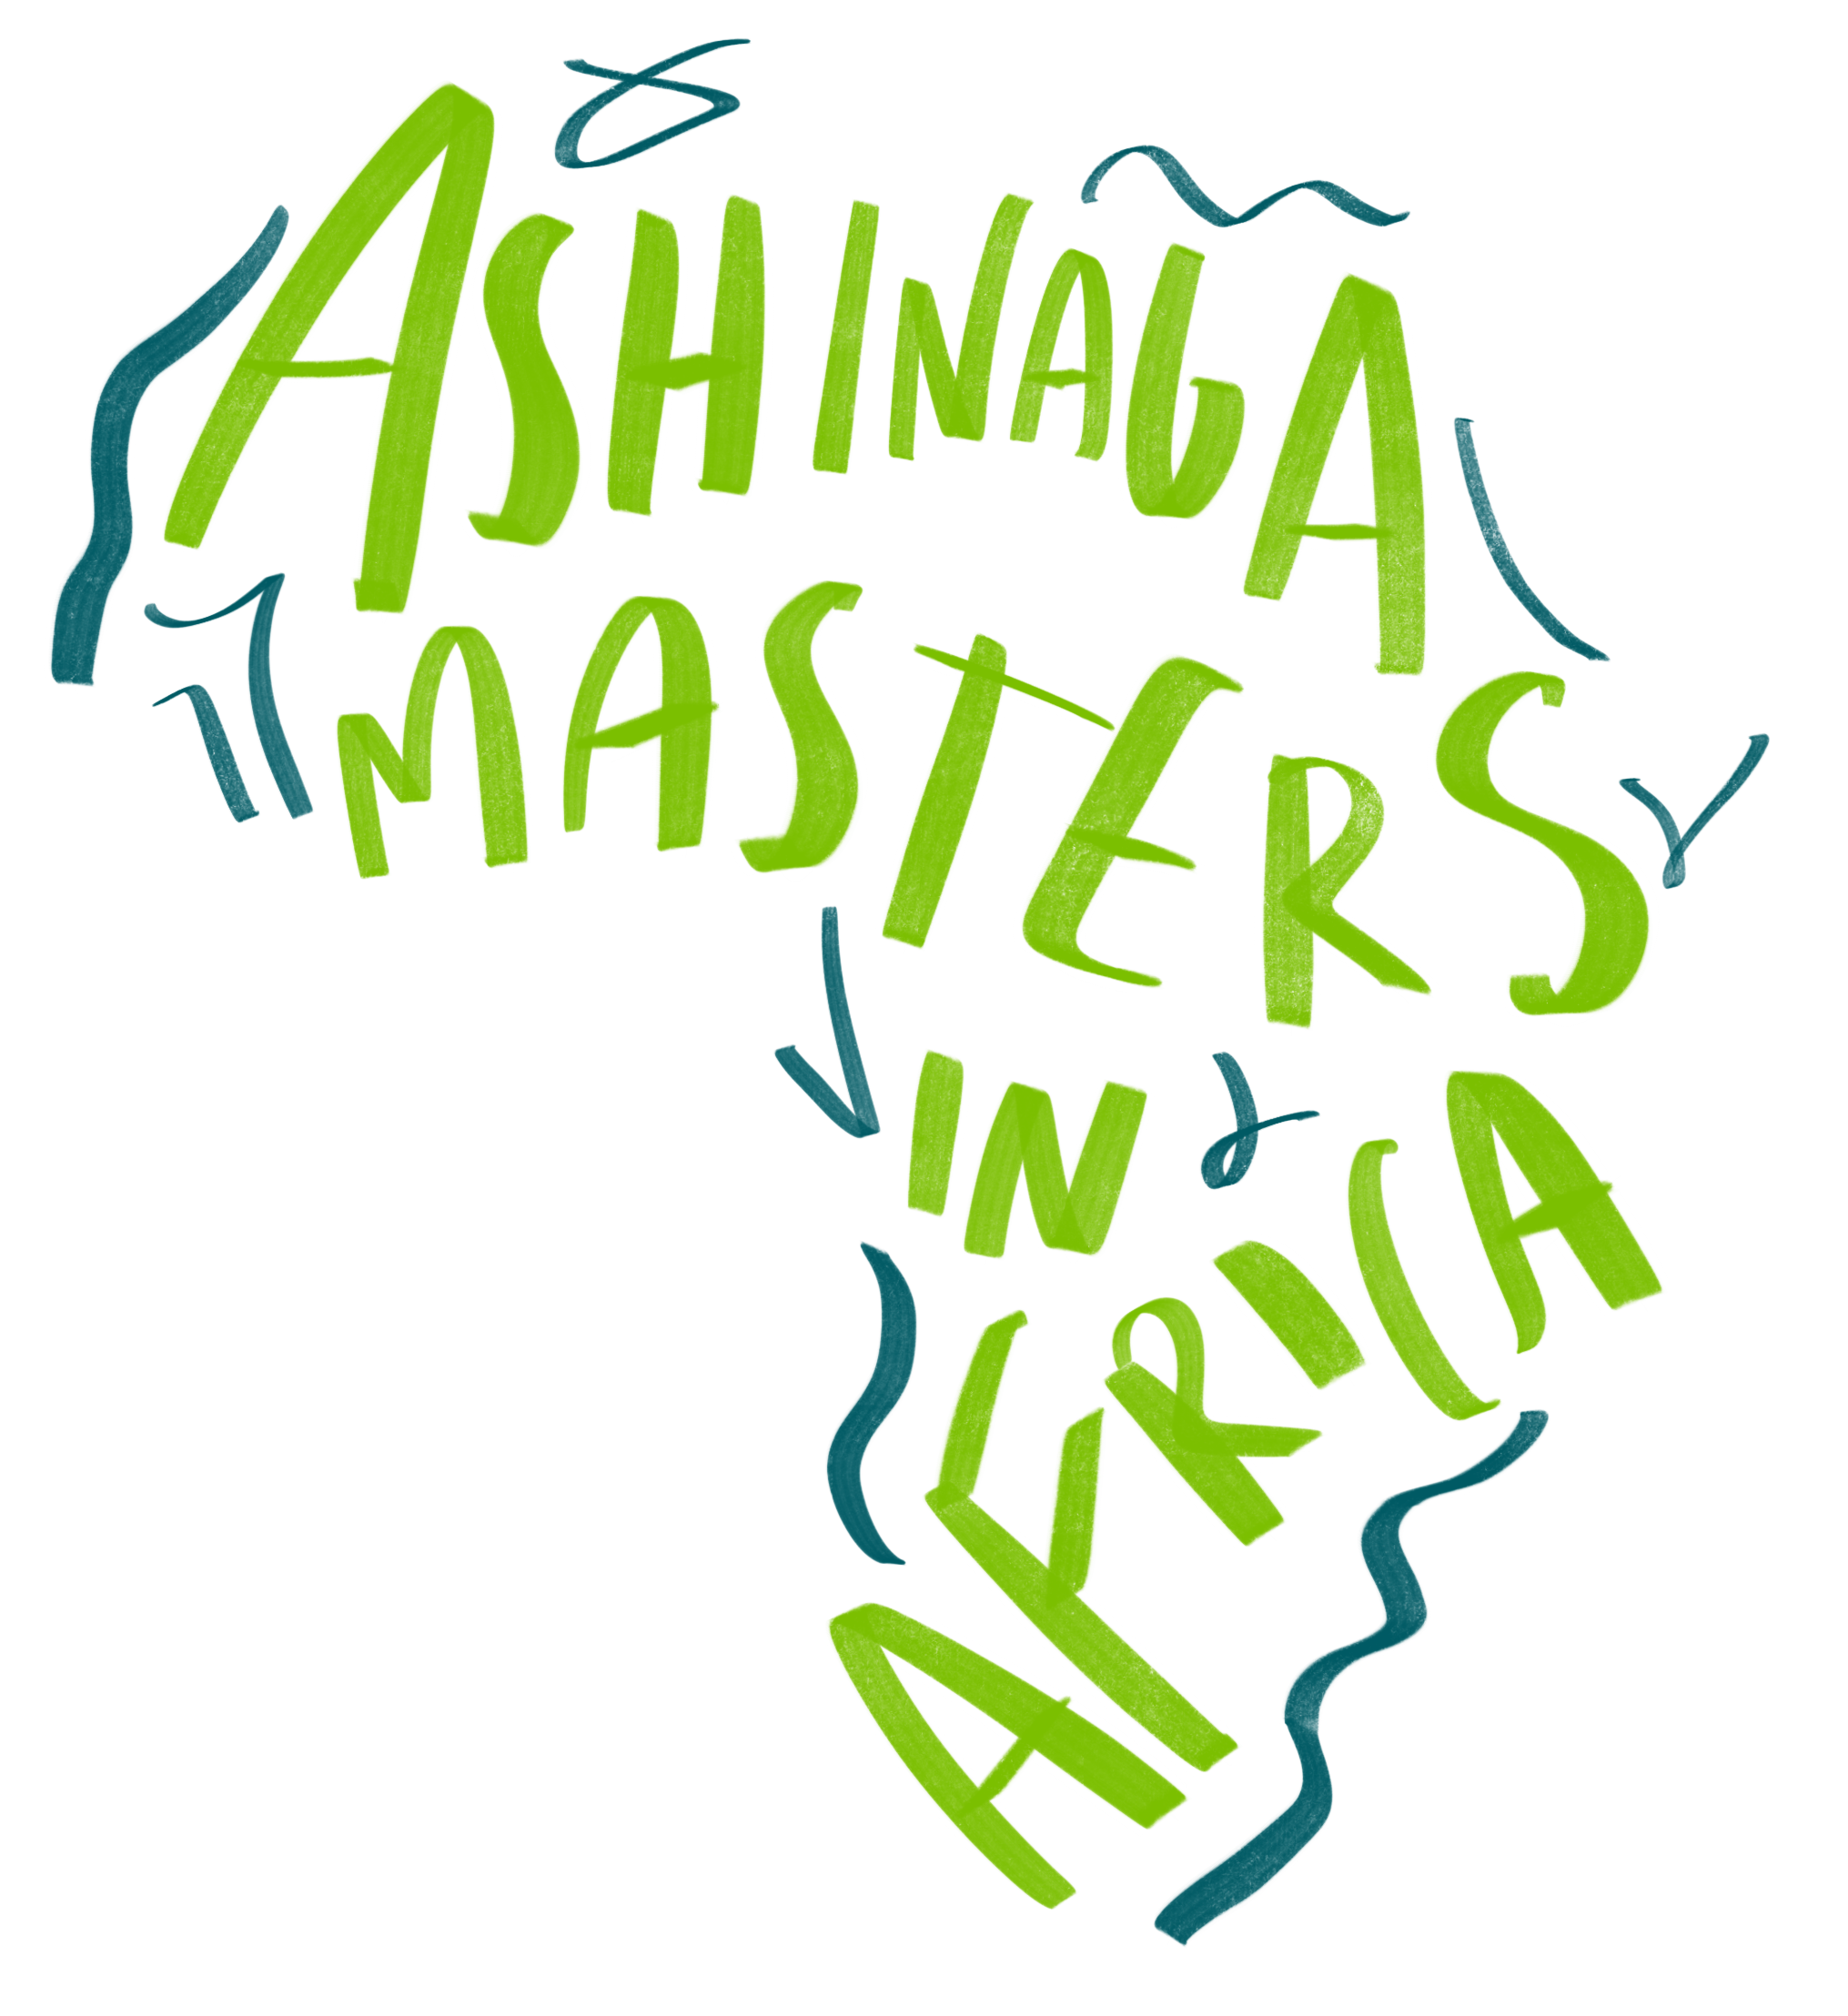 Ashinaga Masters in Africa Program: A new opportunity for AAI Graduates to lead the change in Sub-Saharan Africa